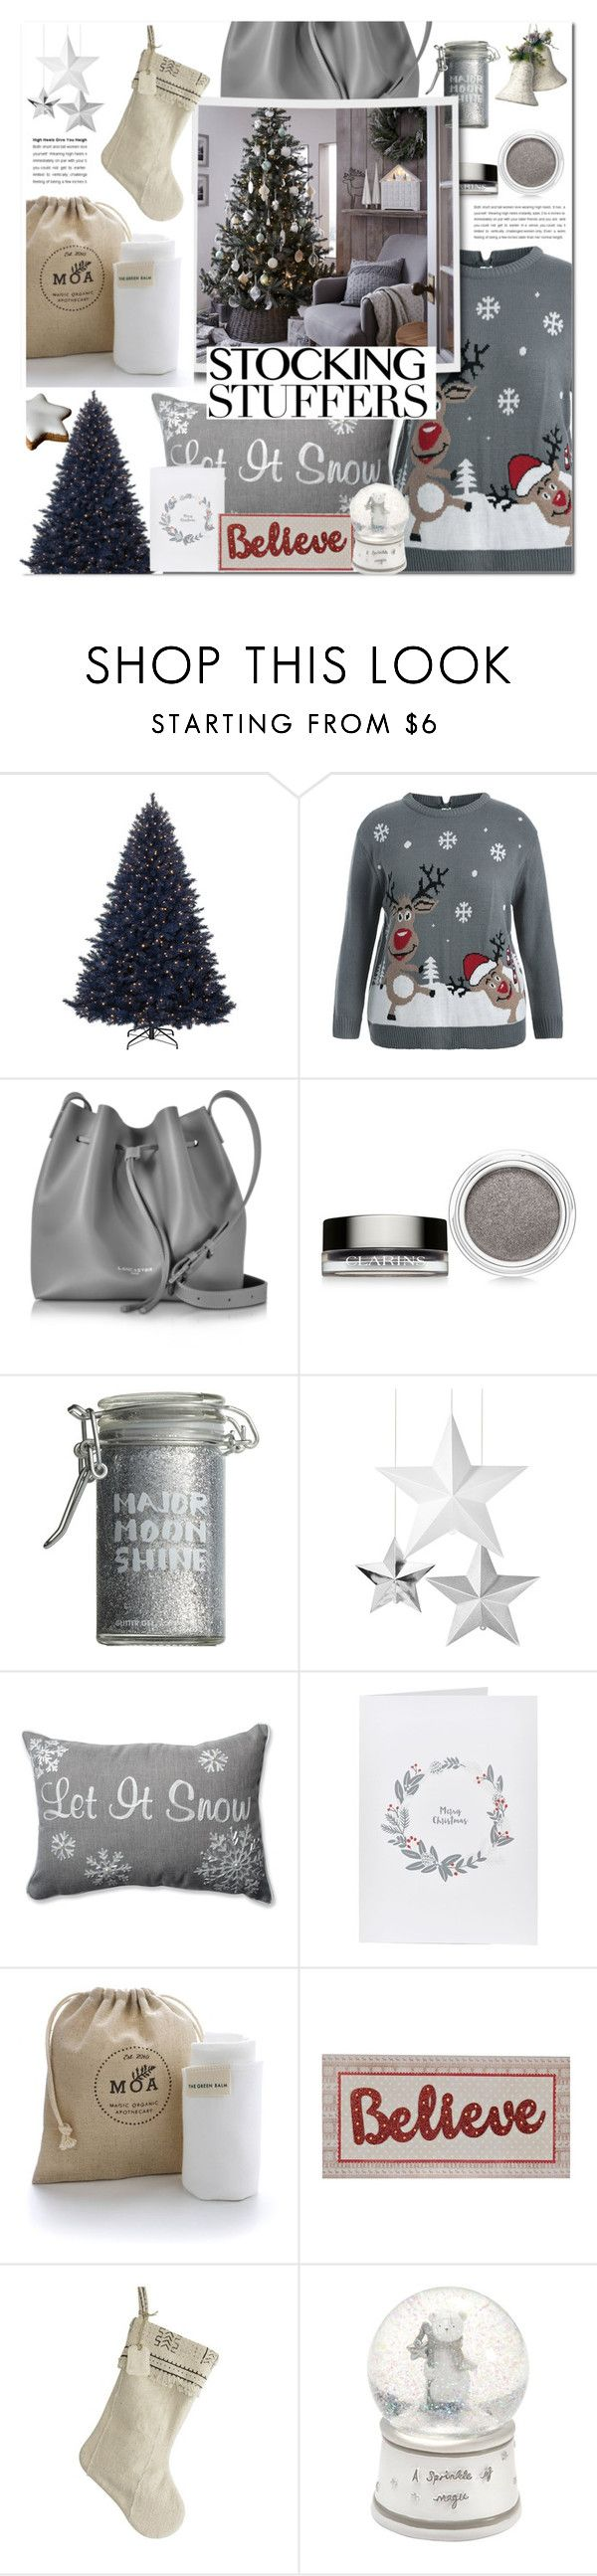 White apron john lewis -  Gift Guide Stocking Stuffers By Pankh Liked On Polyvore Featuring Lancaster